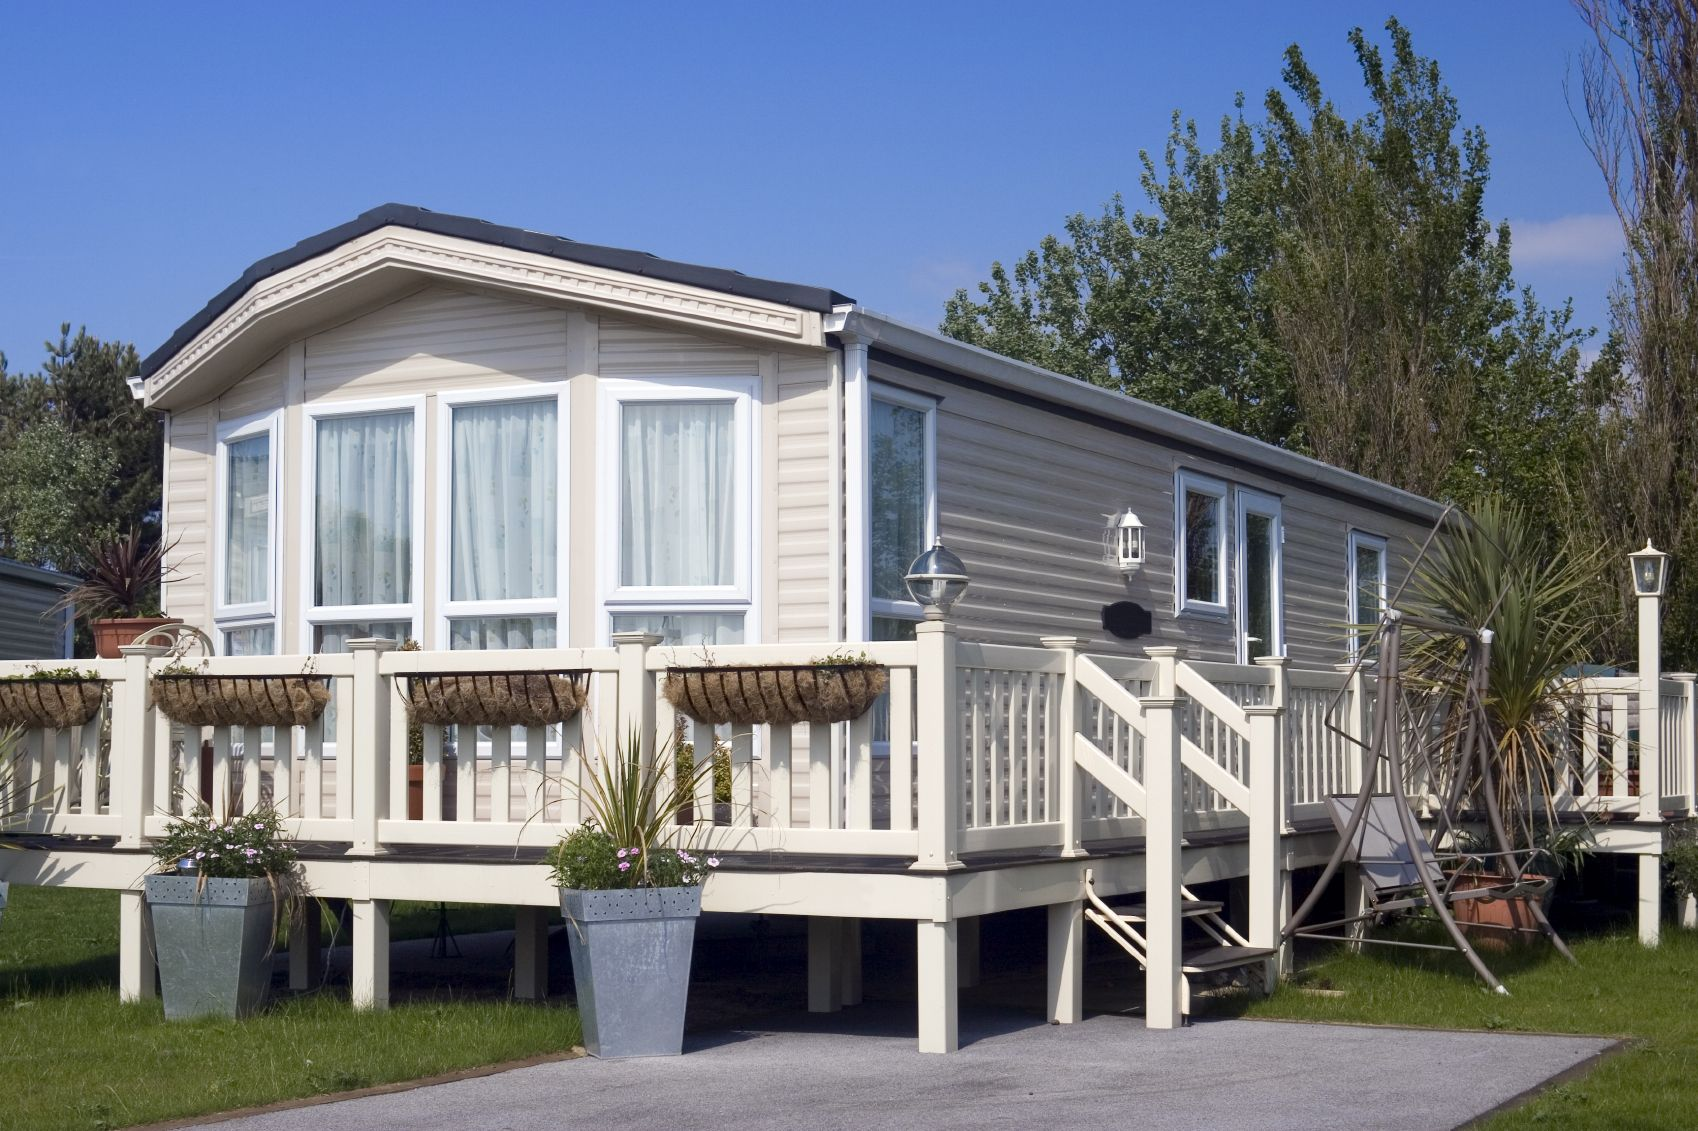 Buying or selling a mobile or manufactured home